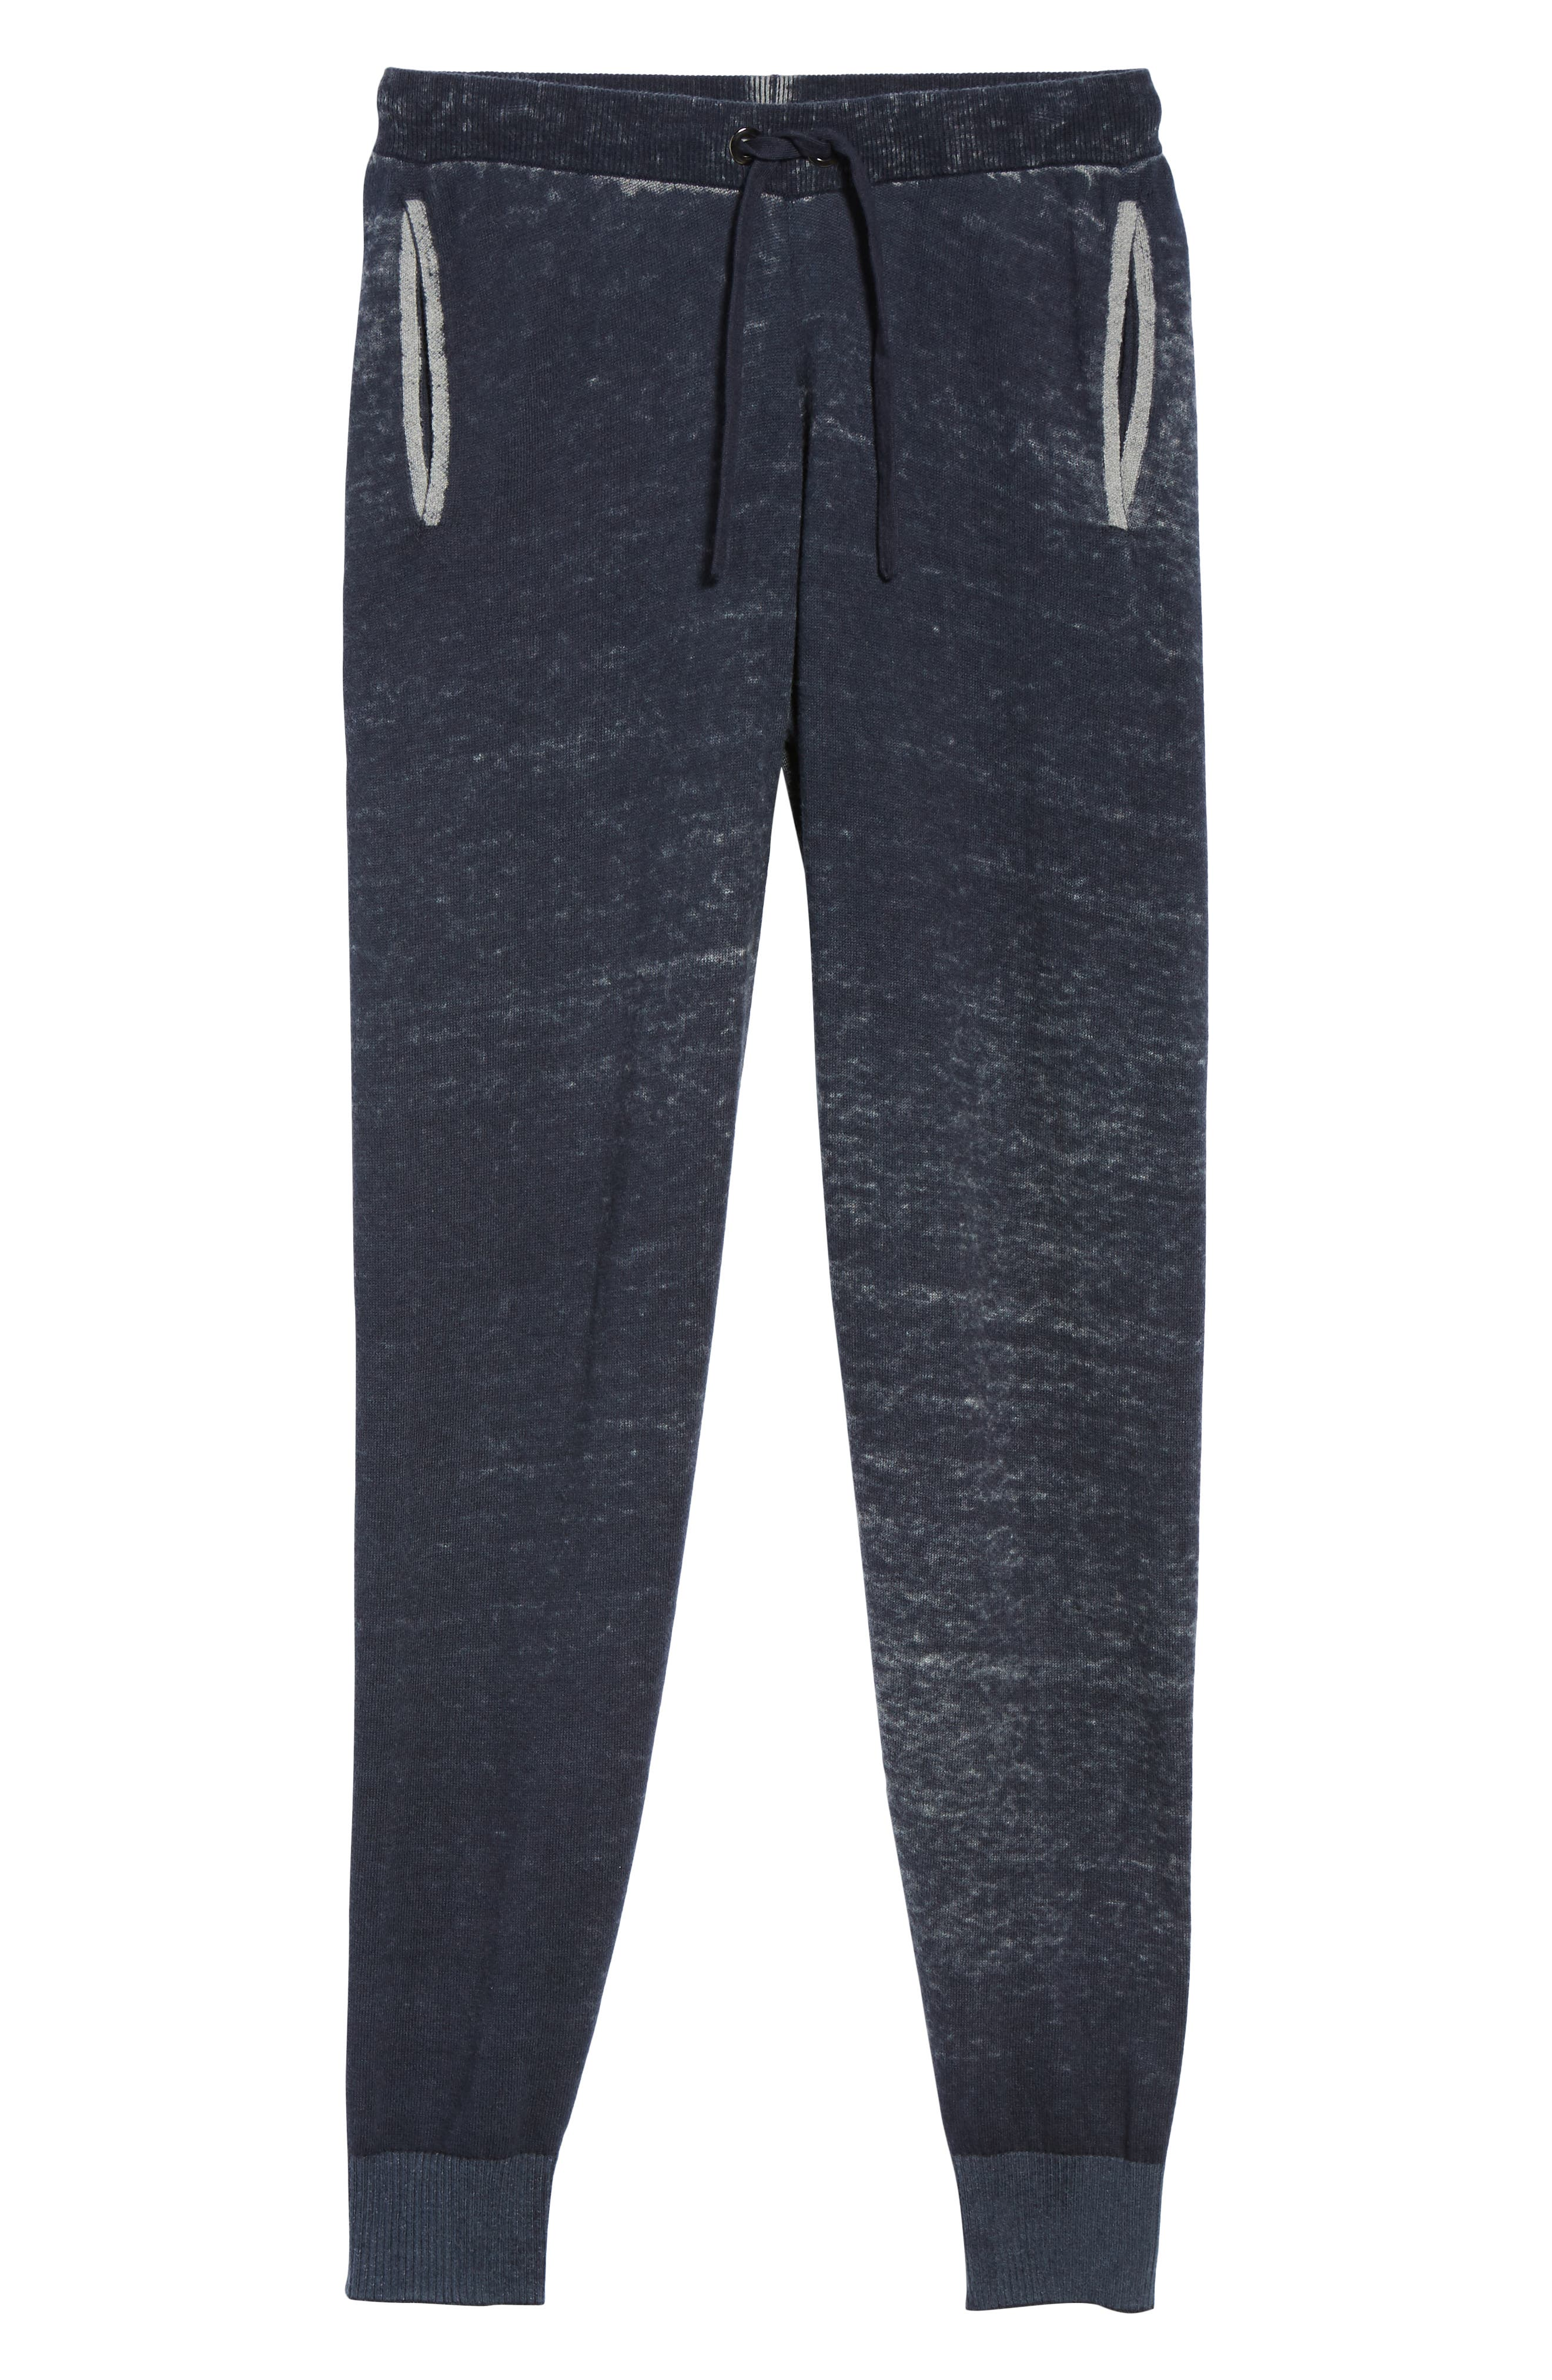 Kruse Rev Print Cash Sweatpants,                             Alternate thumbnail 6, color,                             MOONLESS NIGHT